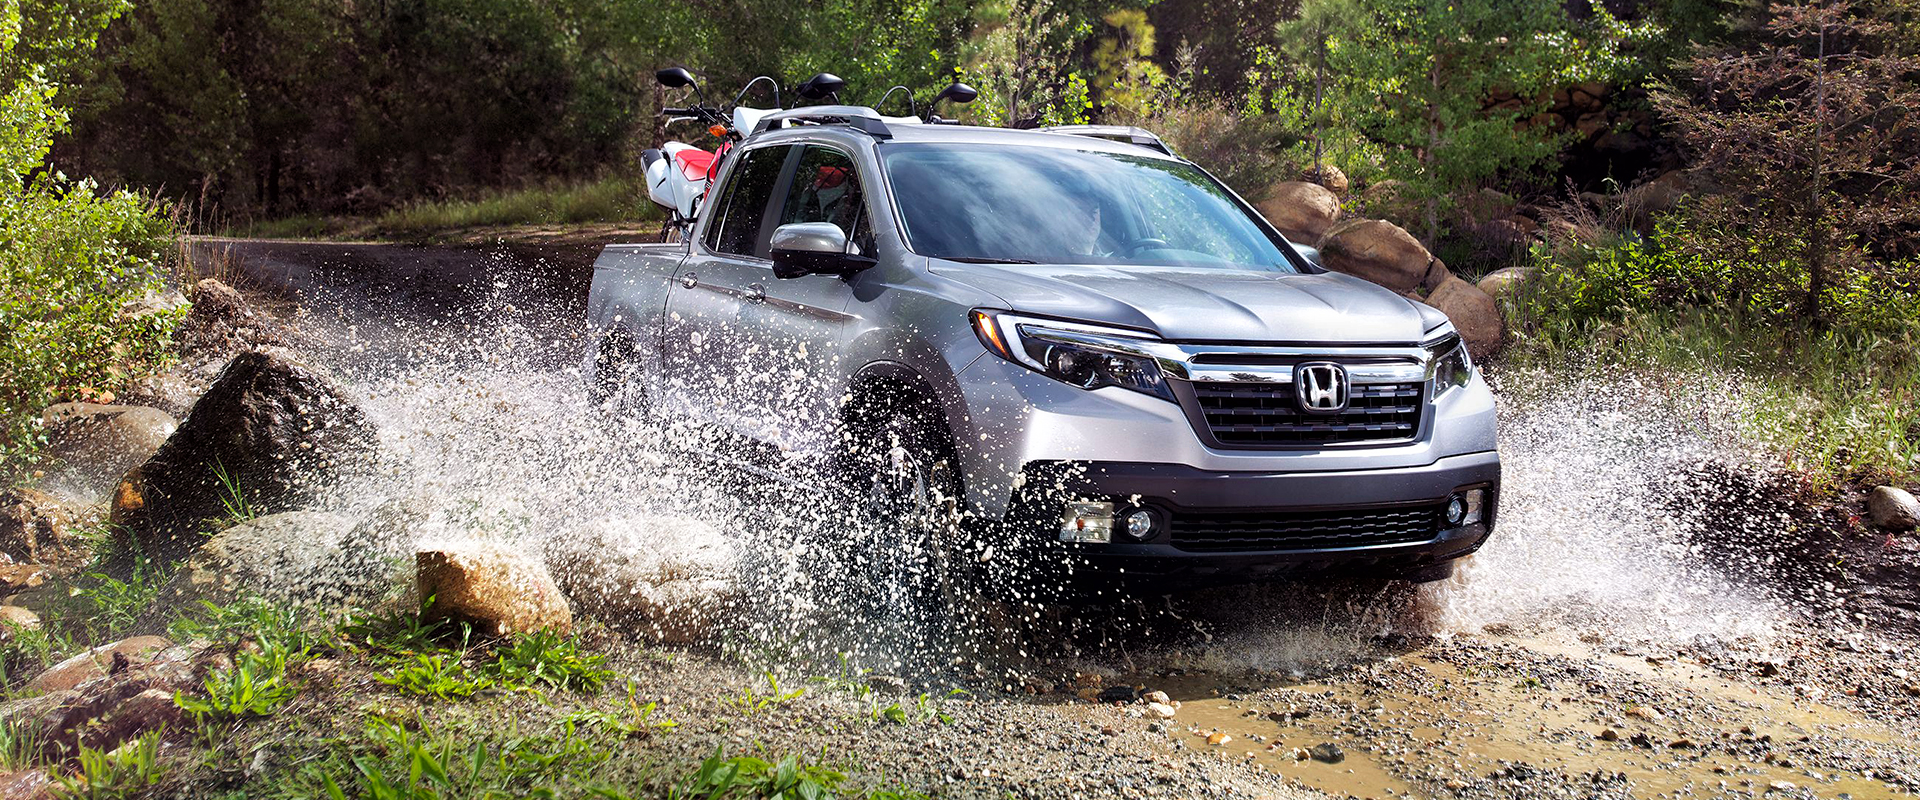 Honda Dealerships In Alabama >> 2019 Honda Ridgeline Central Alabama Honda Dealers